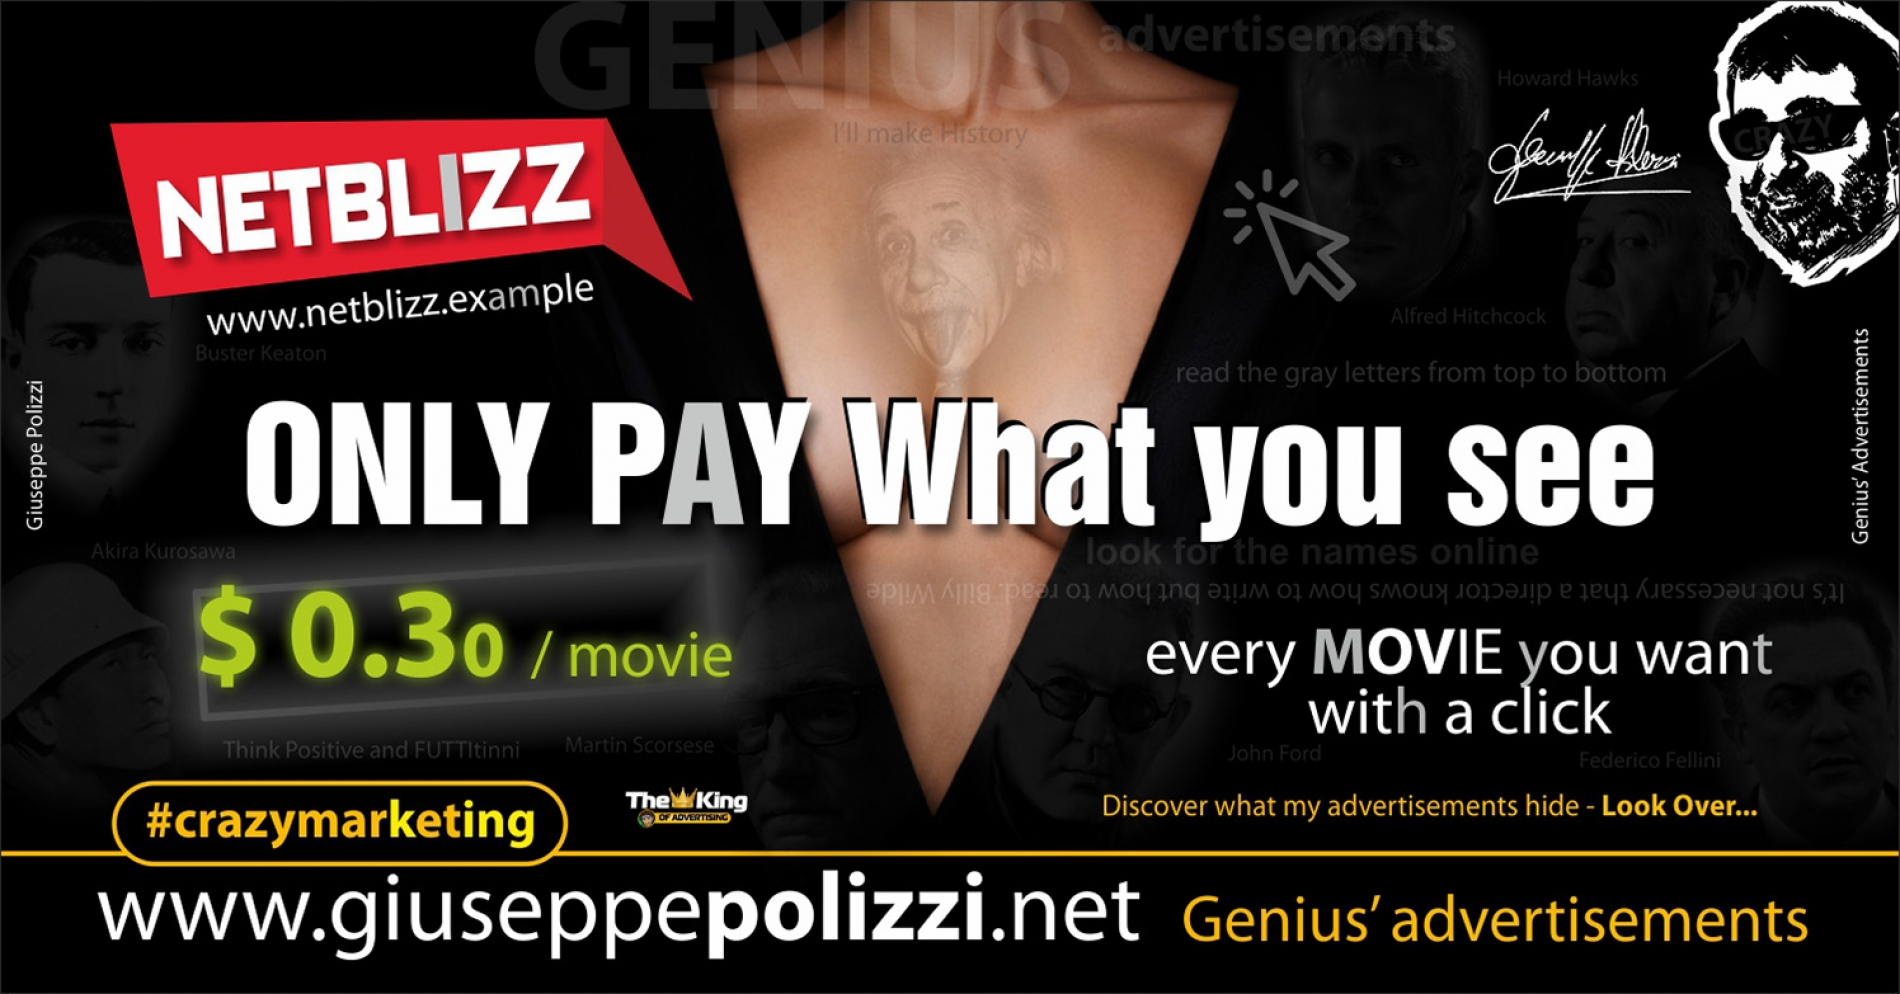 giuseppe polizzi crazymarketing Only Pay what you see 2018 advertising